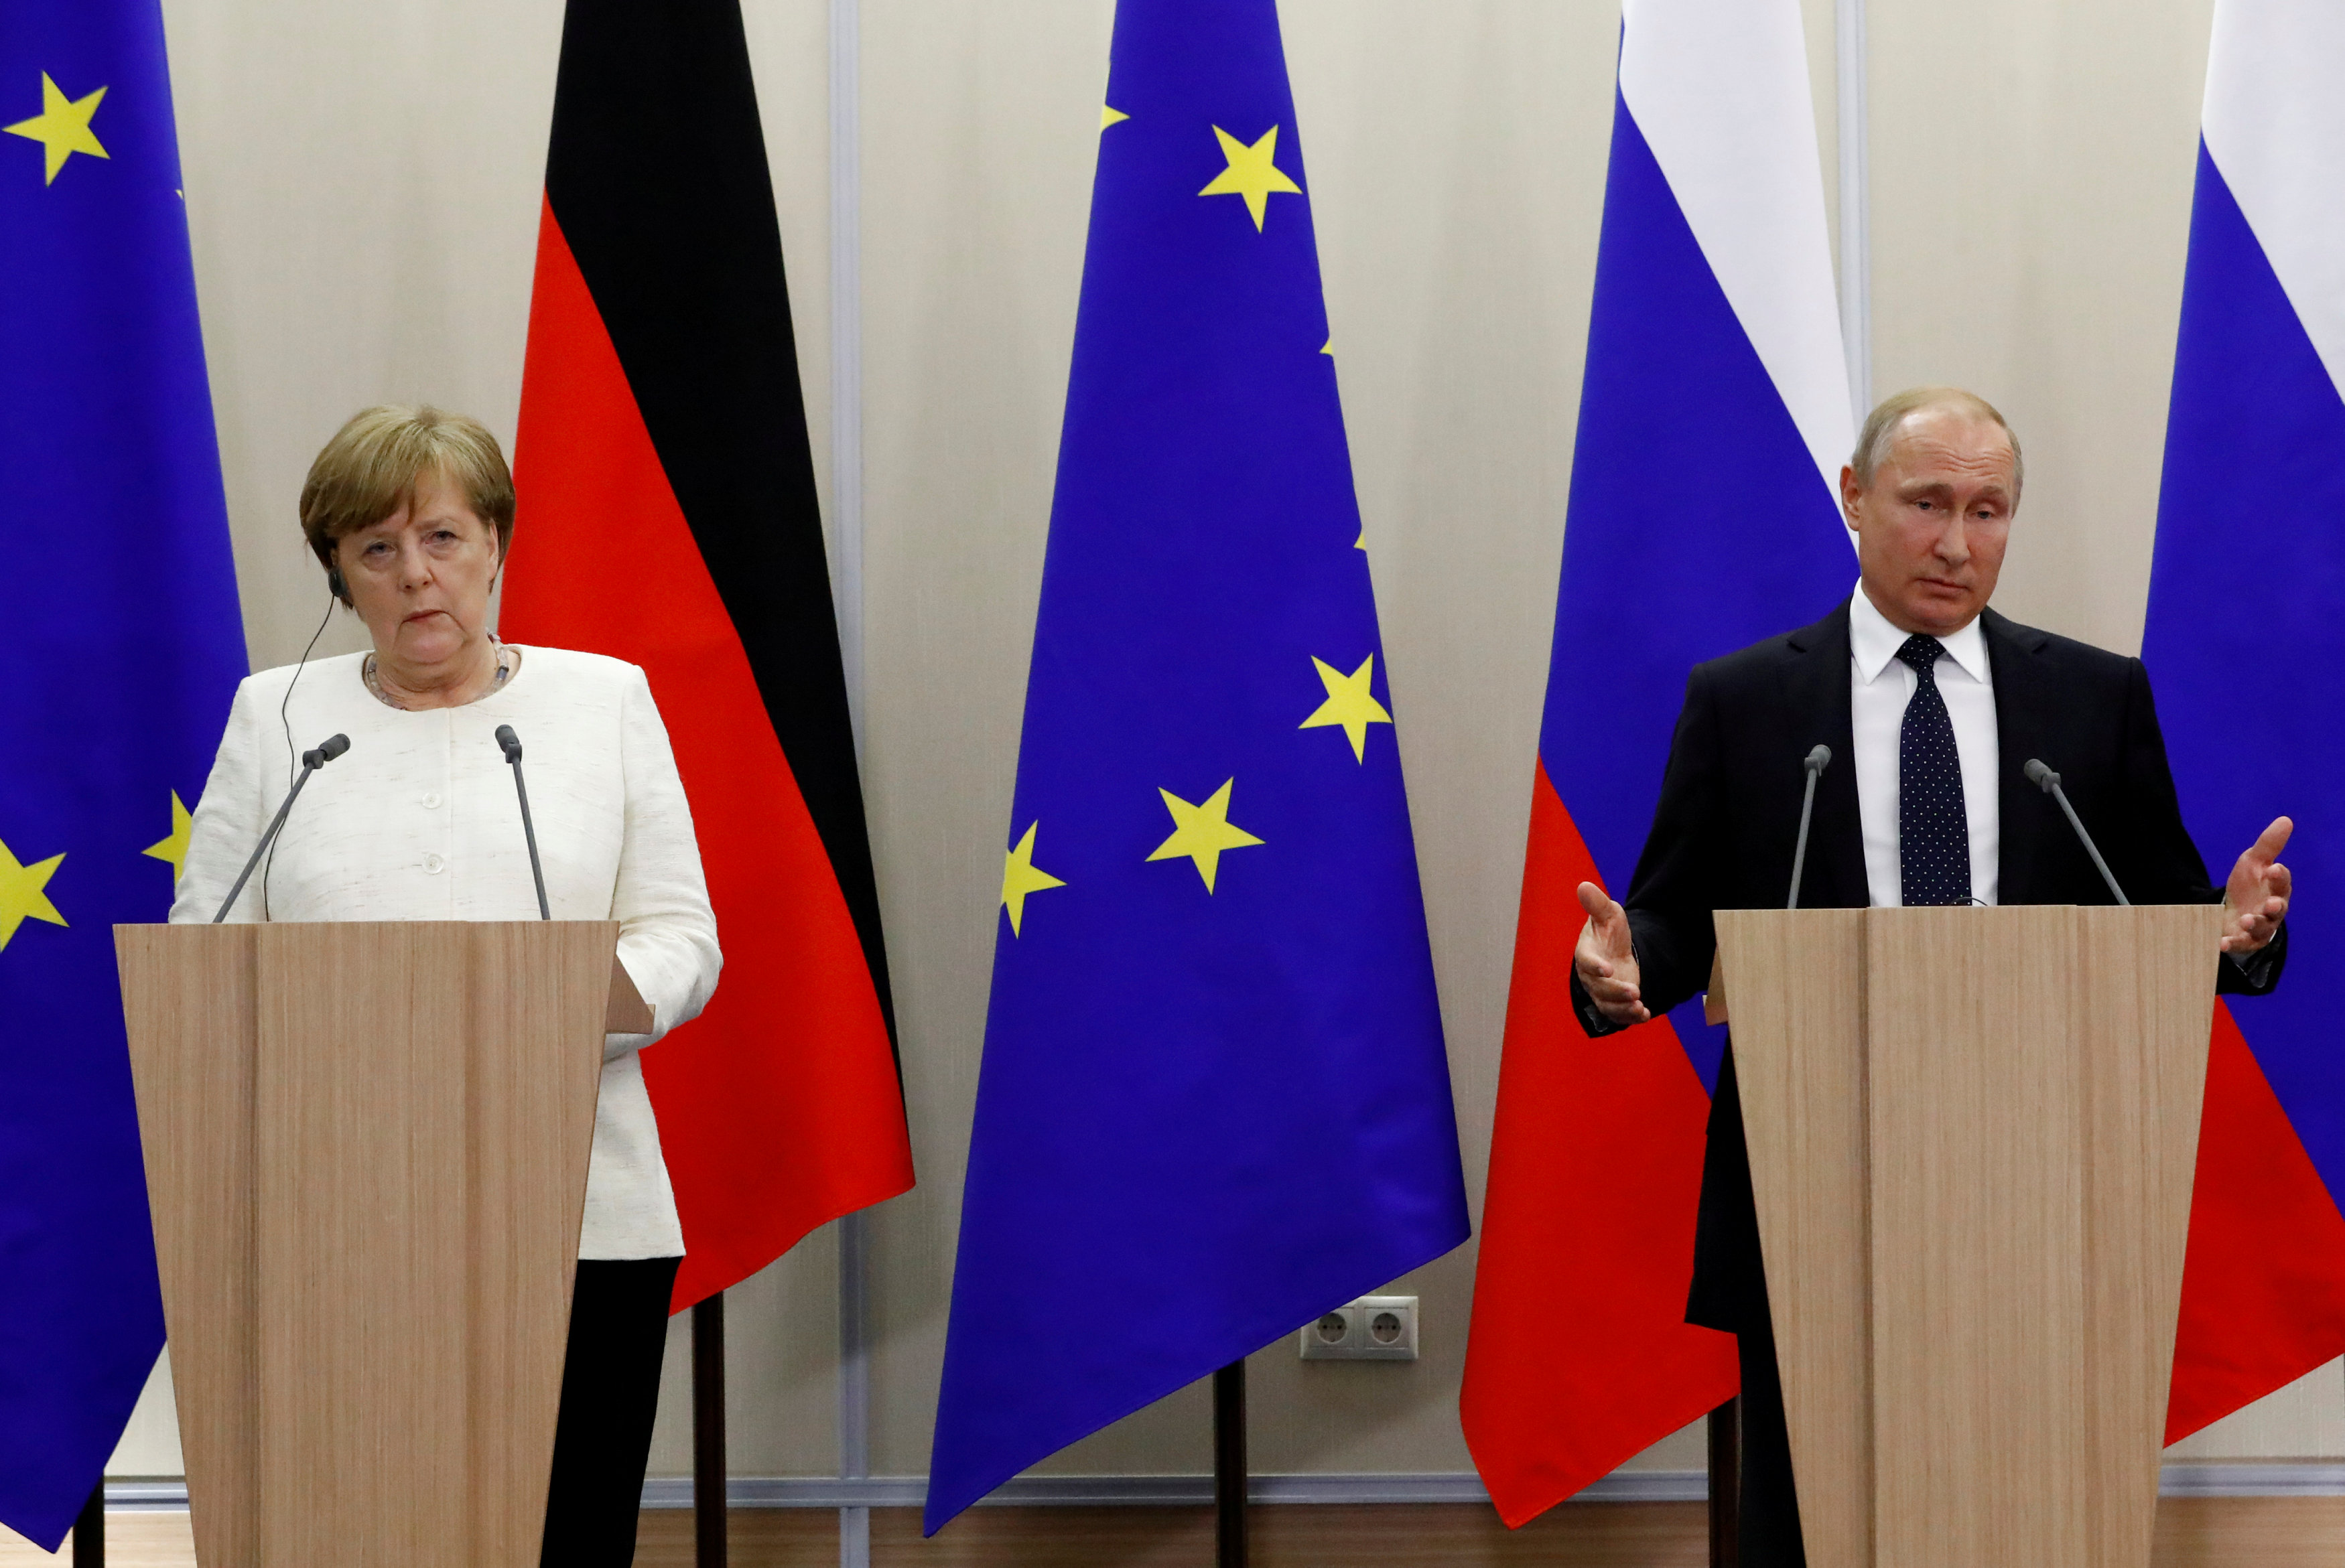 Russian President Putin and German Chancellor Merkel attend a joint news conference following their meeting in Sochi